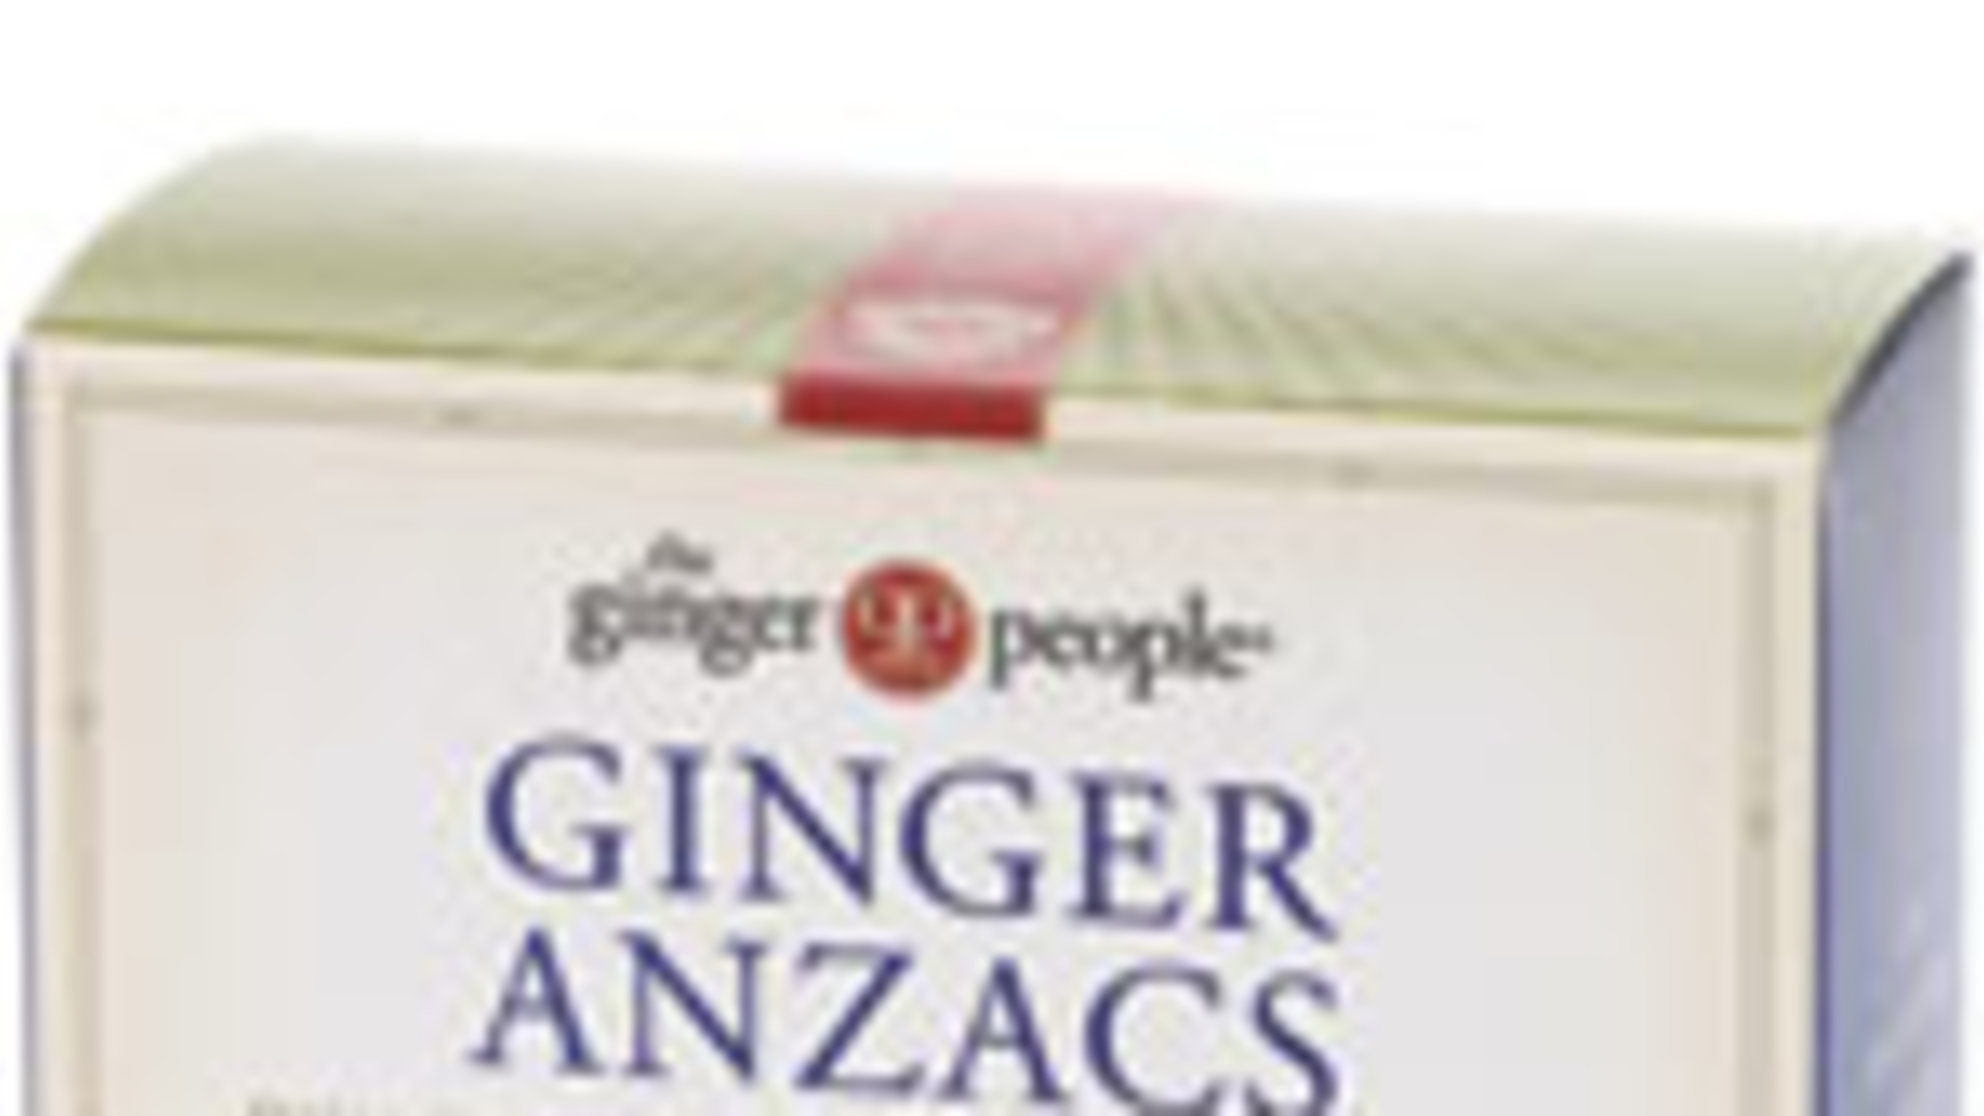 The Ginger People Ginger Anzacs